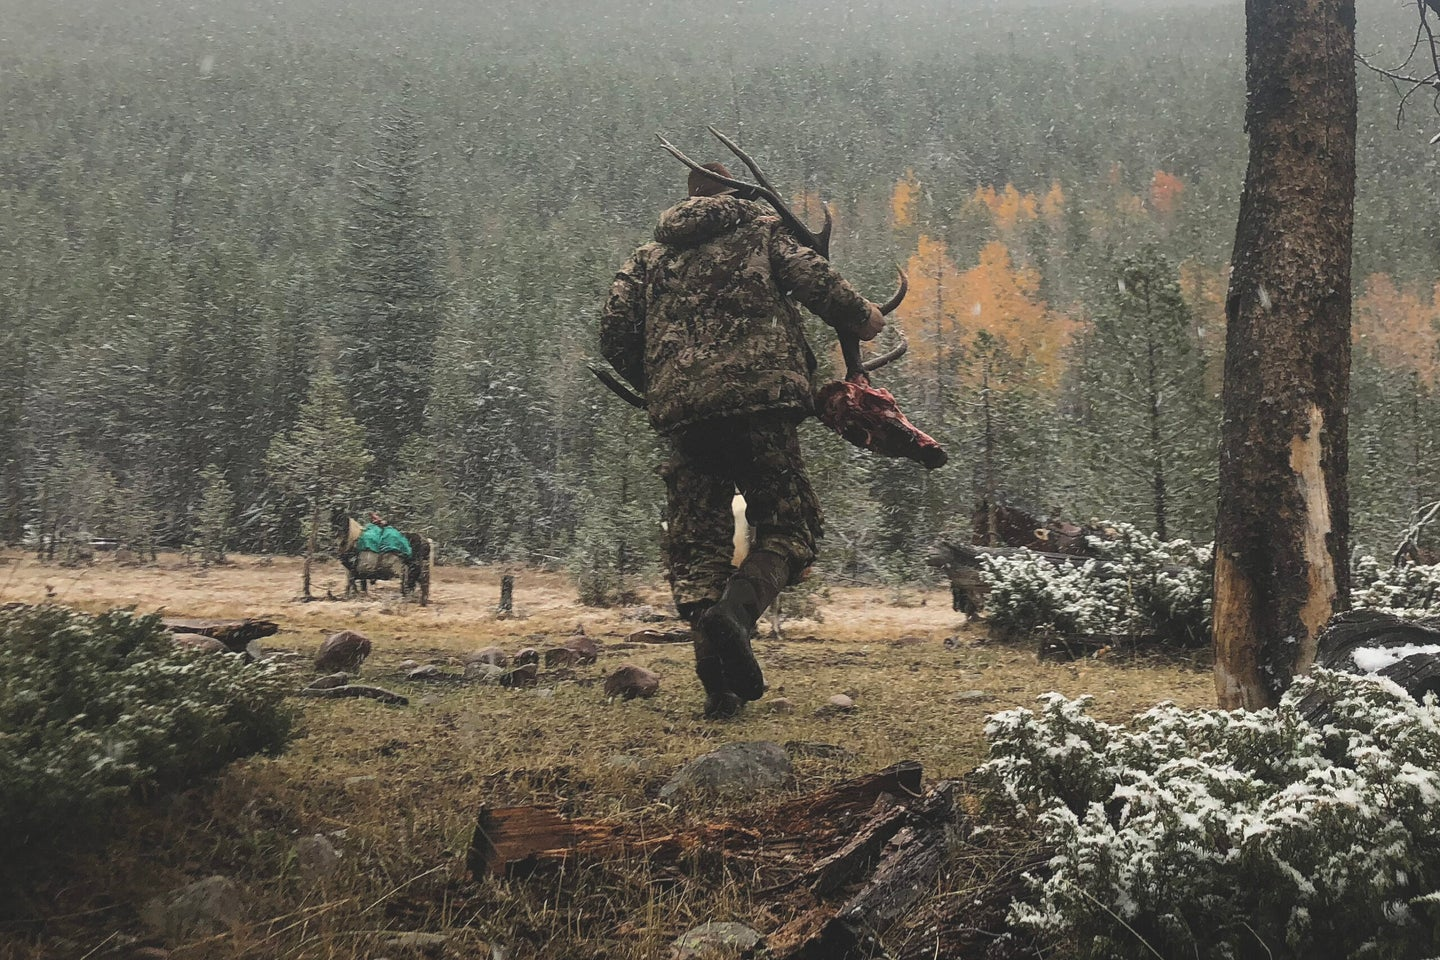 A mountain hunter carries a fresh bull elk skull into a snowy clearing.